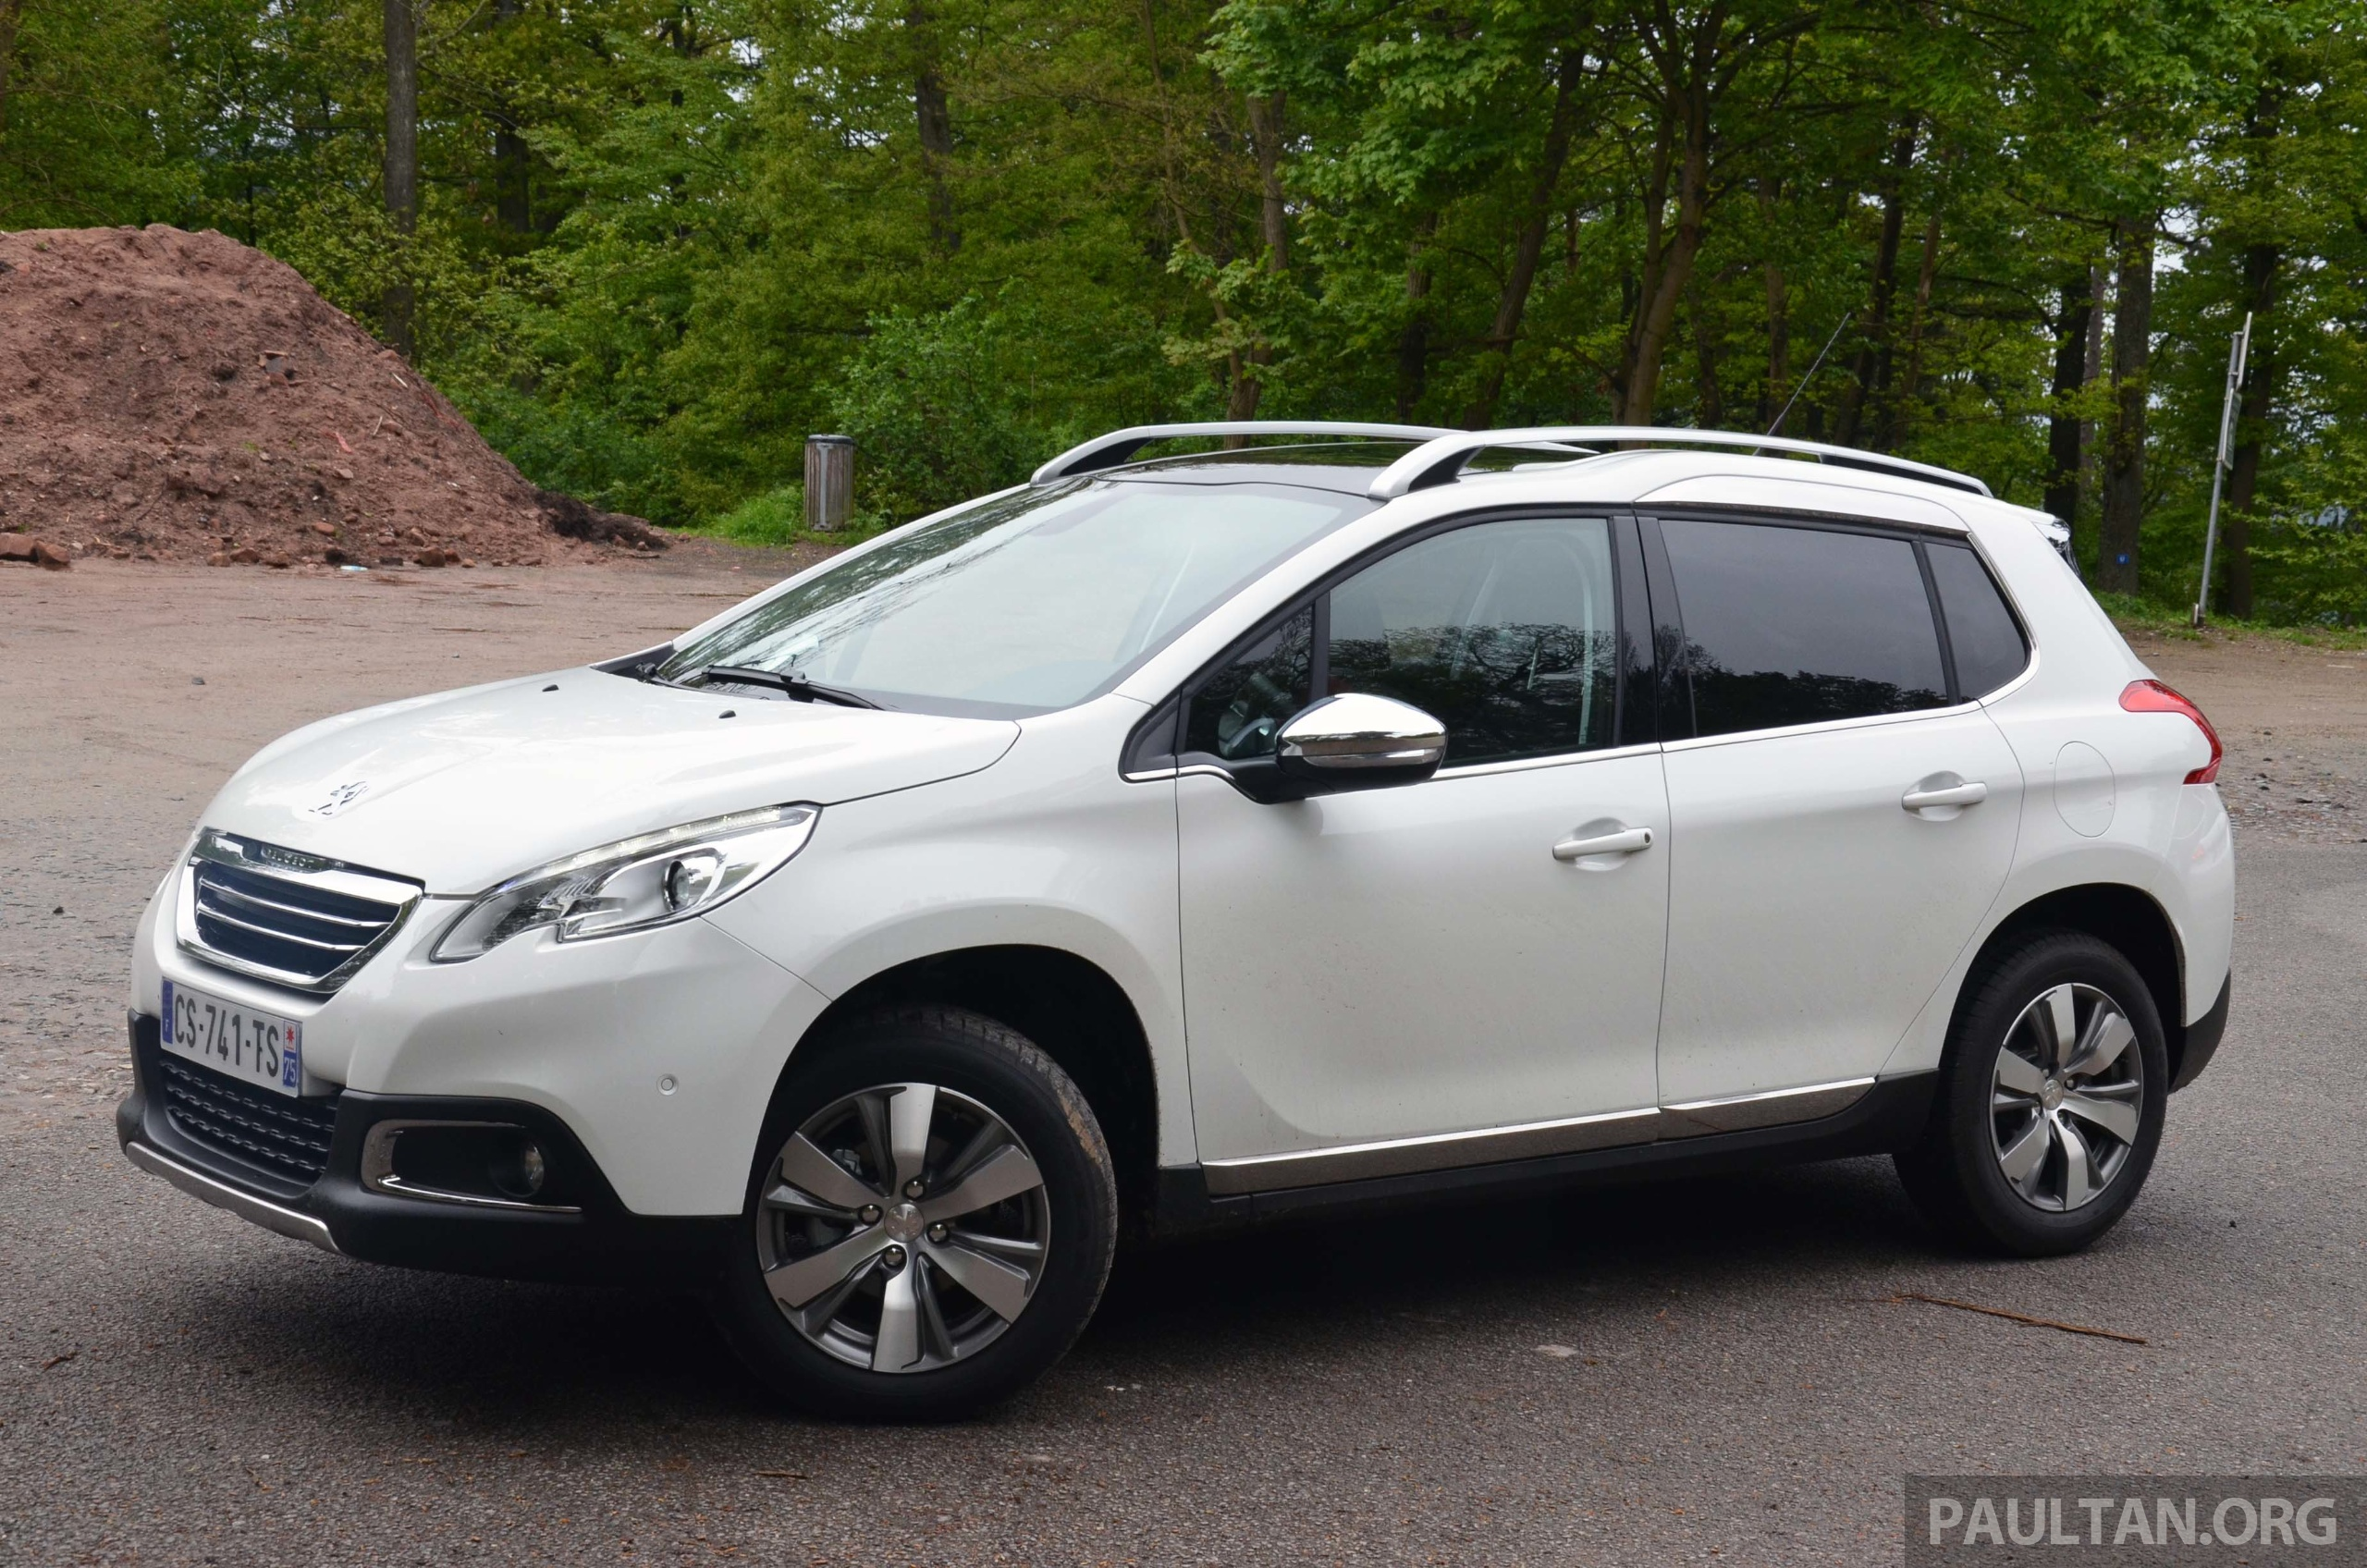 Driven Peugeot 2008 Crossover In Alsace France Paul Tan